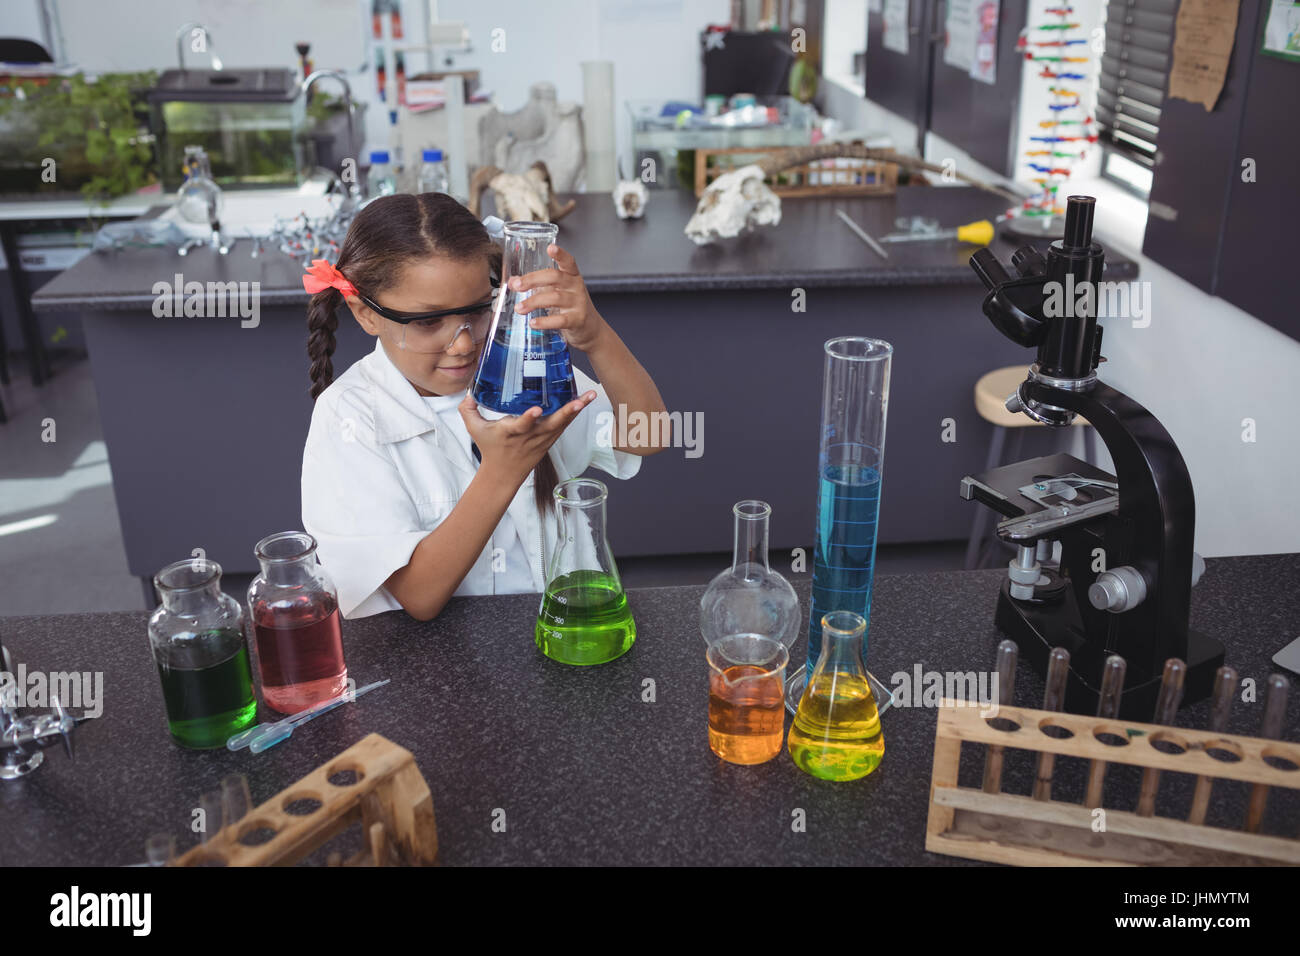 High angle view of elementary student examining blue chemical in flask by desk at science laboratory Stock Photo